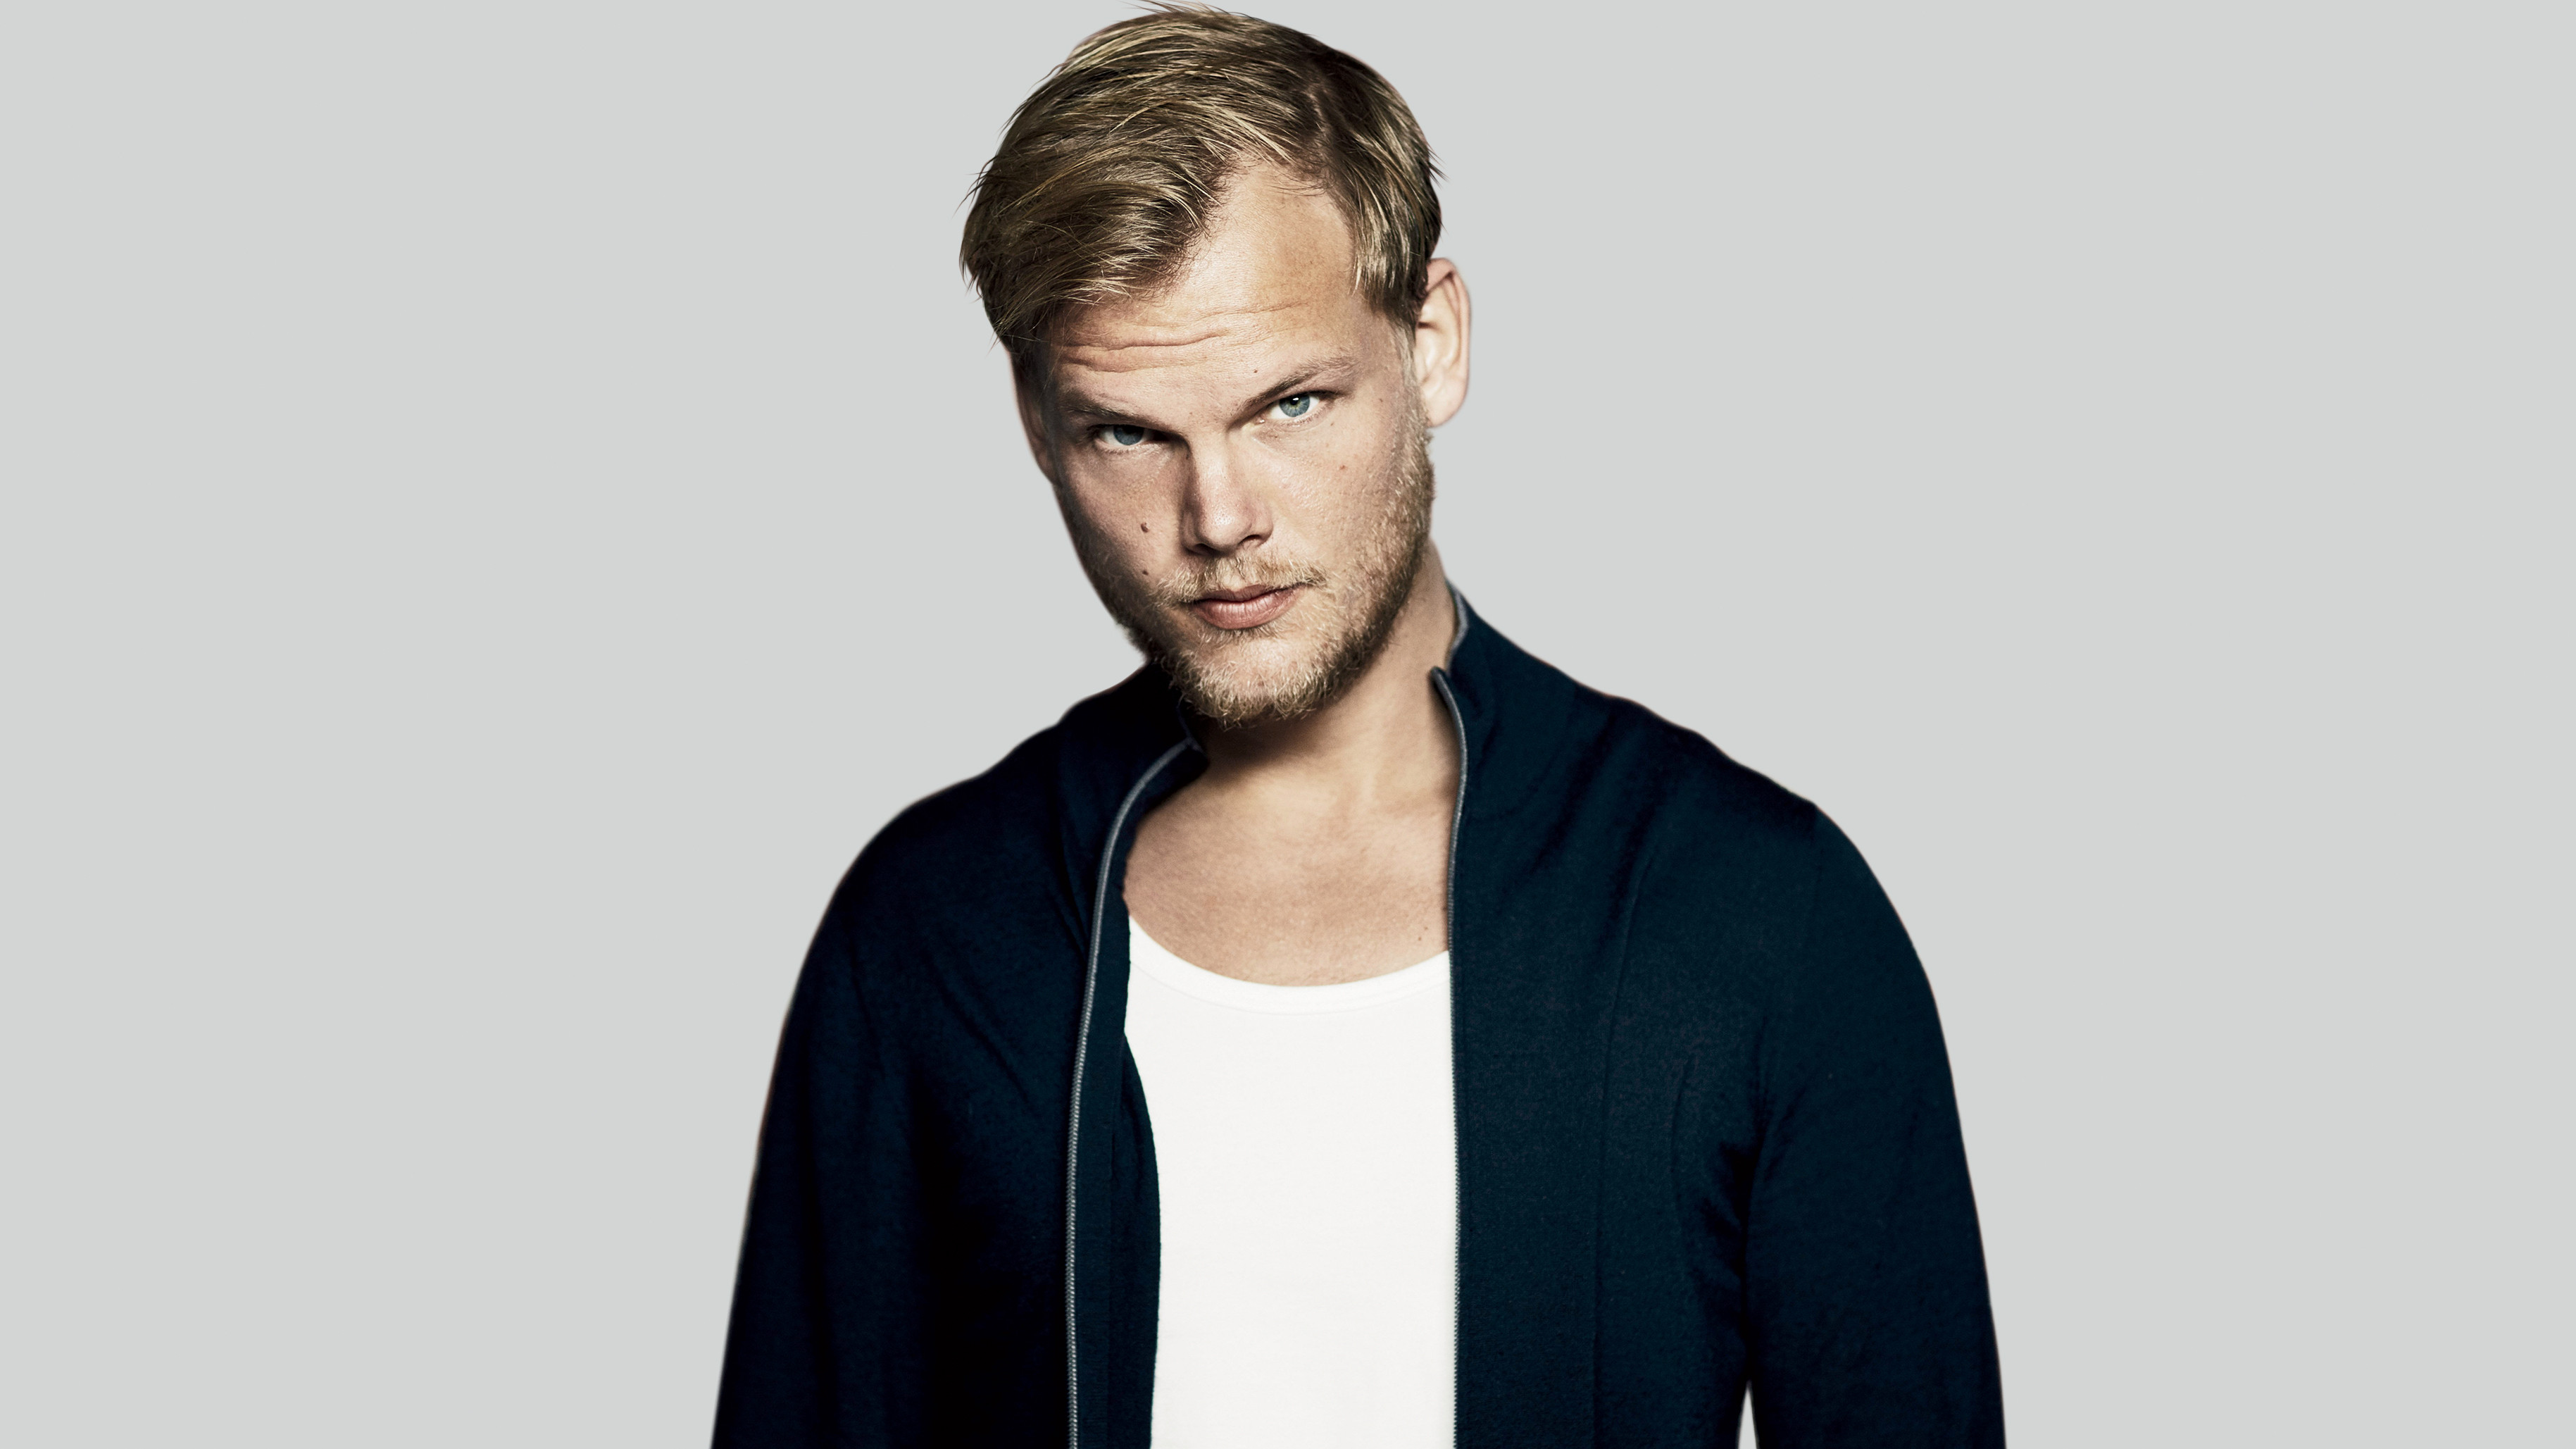 Nearly One Year After His Passing, Avicii 'SOS' Released